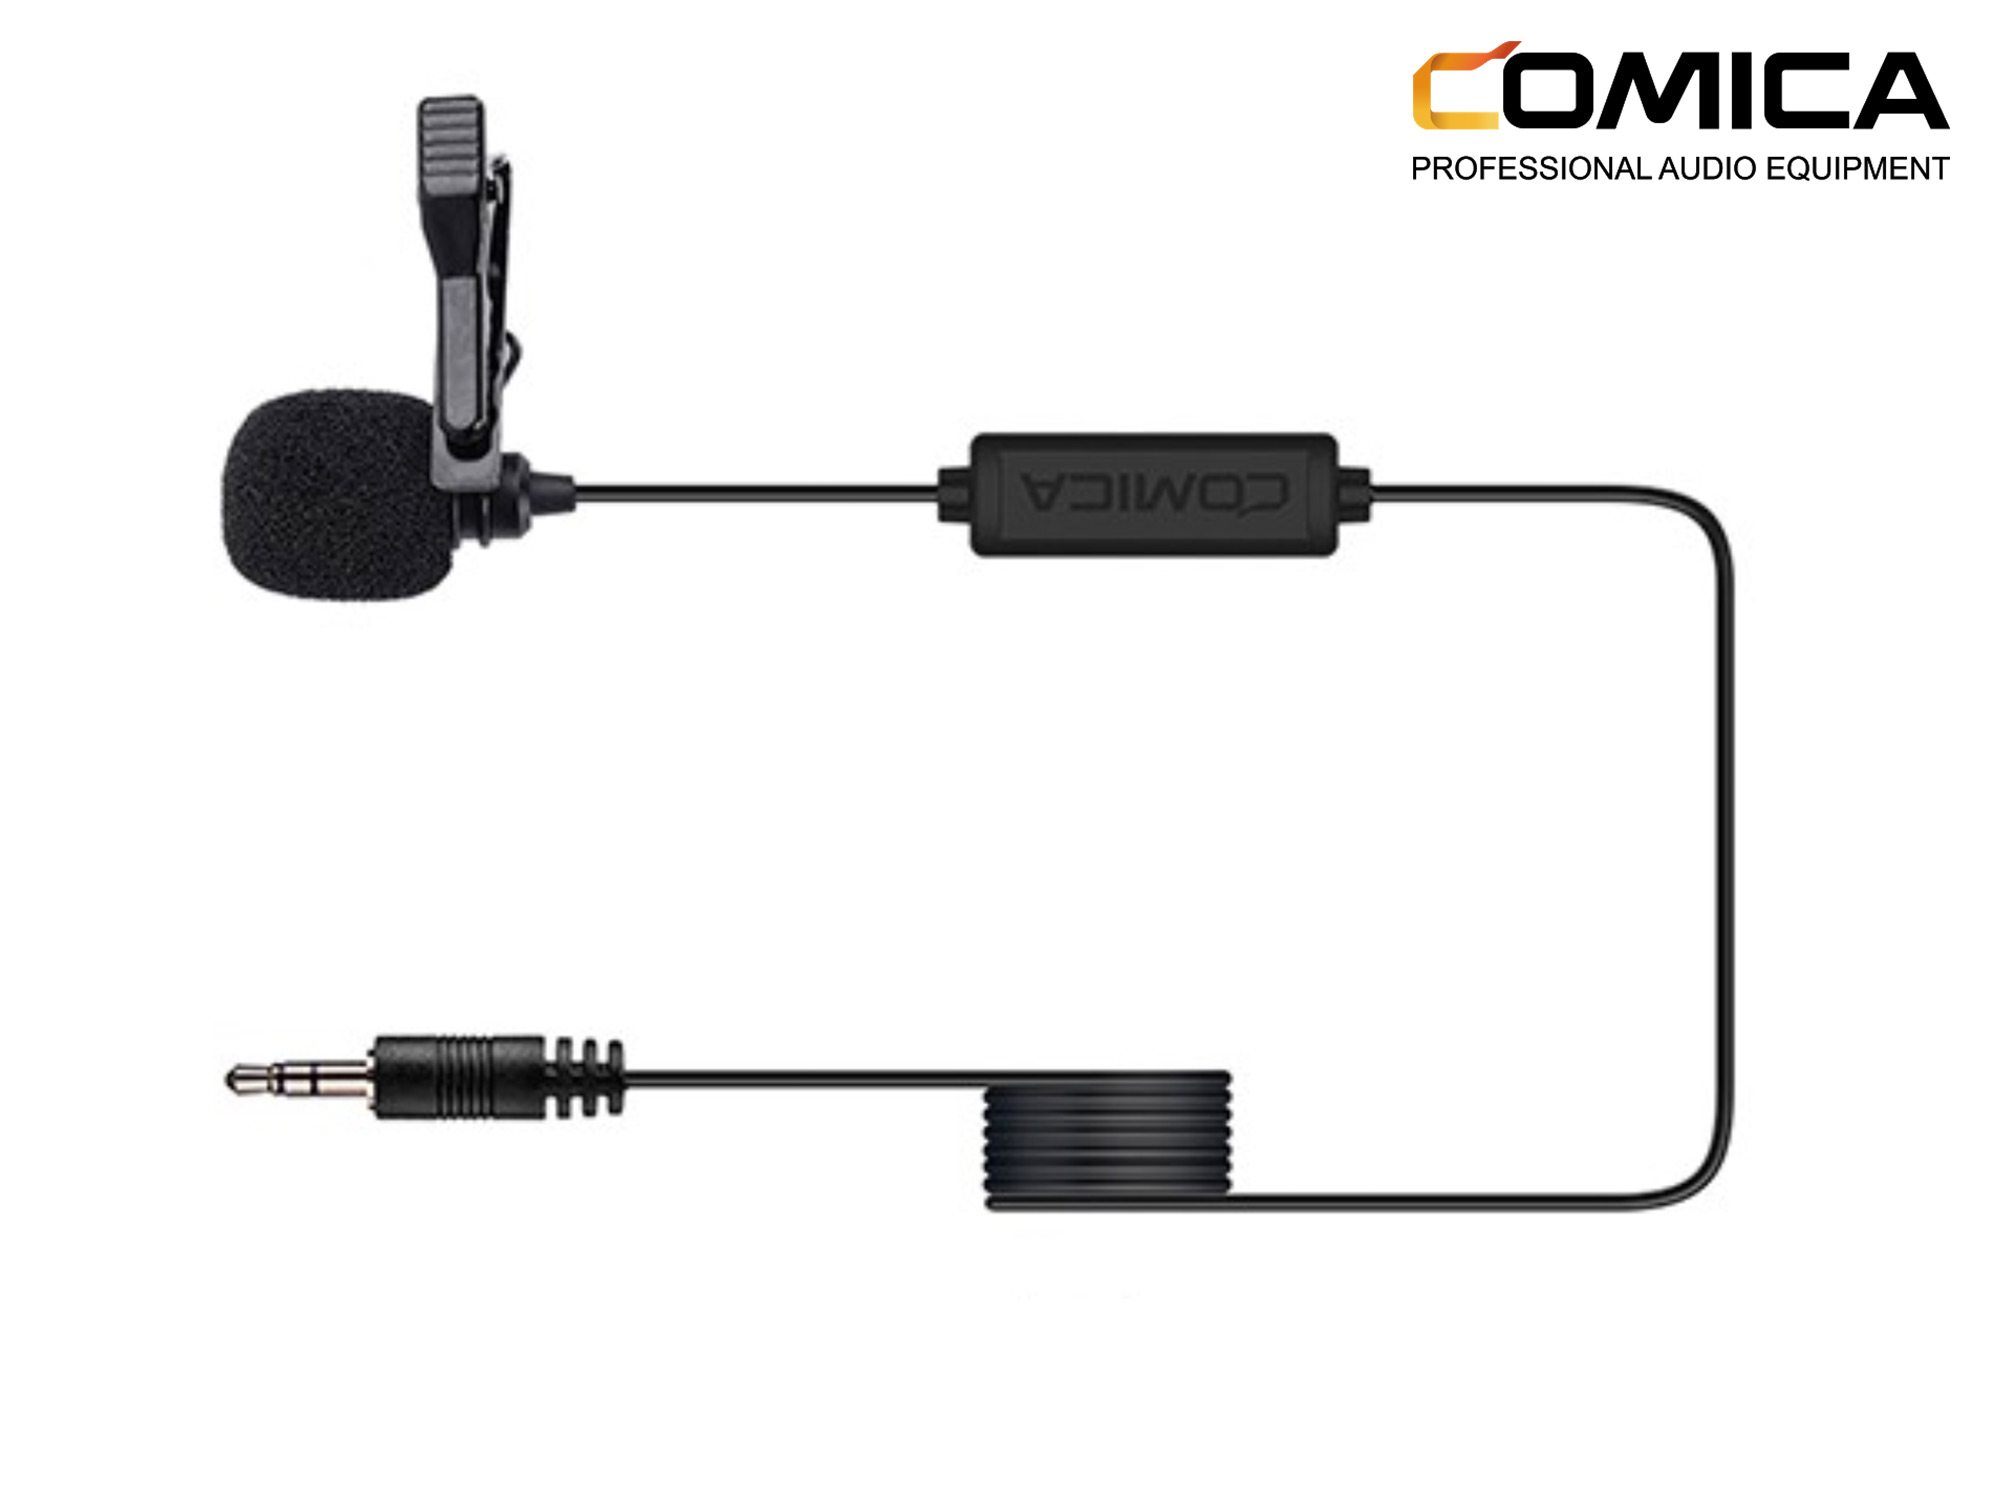 COMICA CVM-V01CP Lavalier 2.5M Microphone for Camera/GoPro